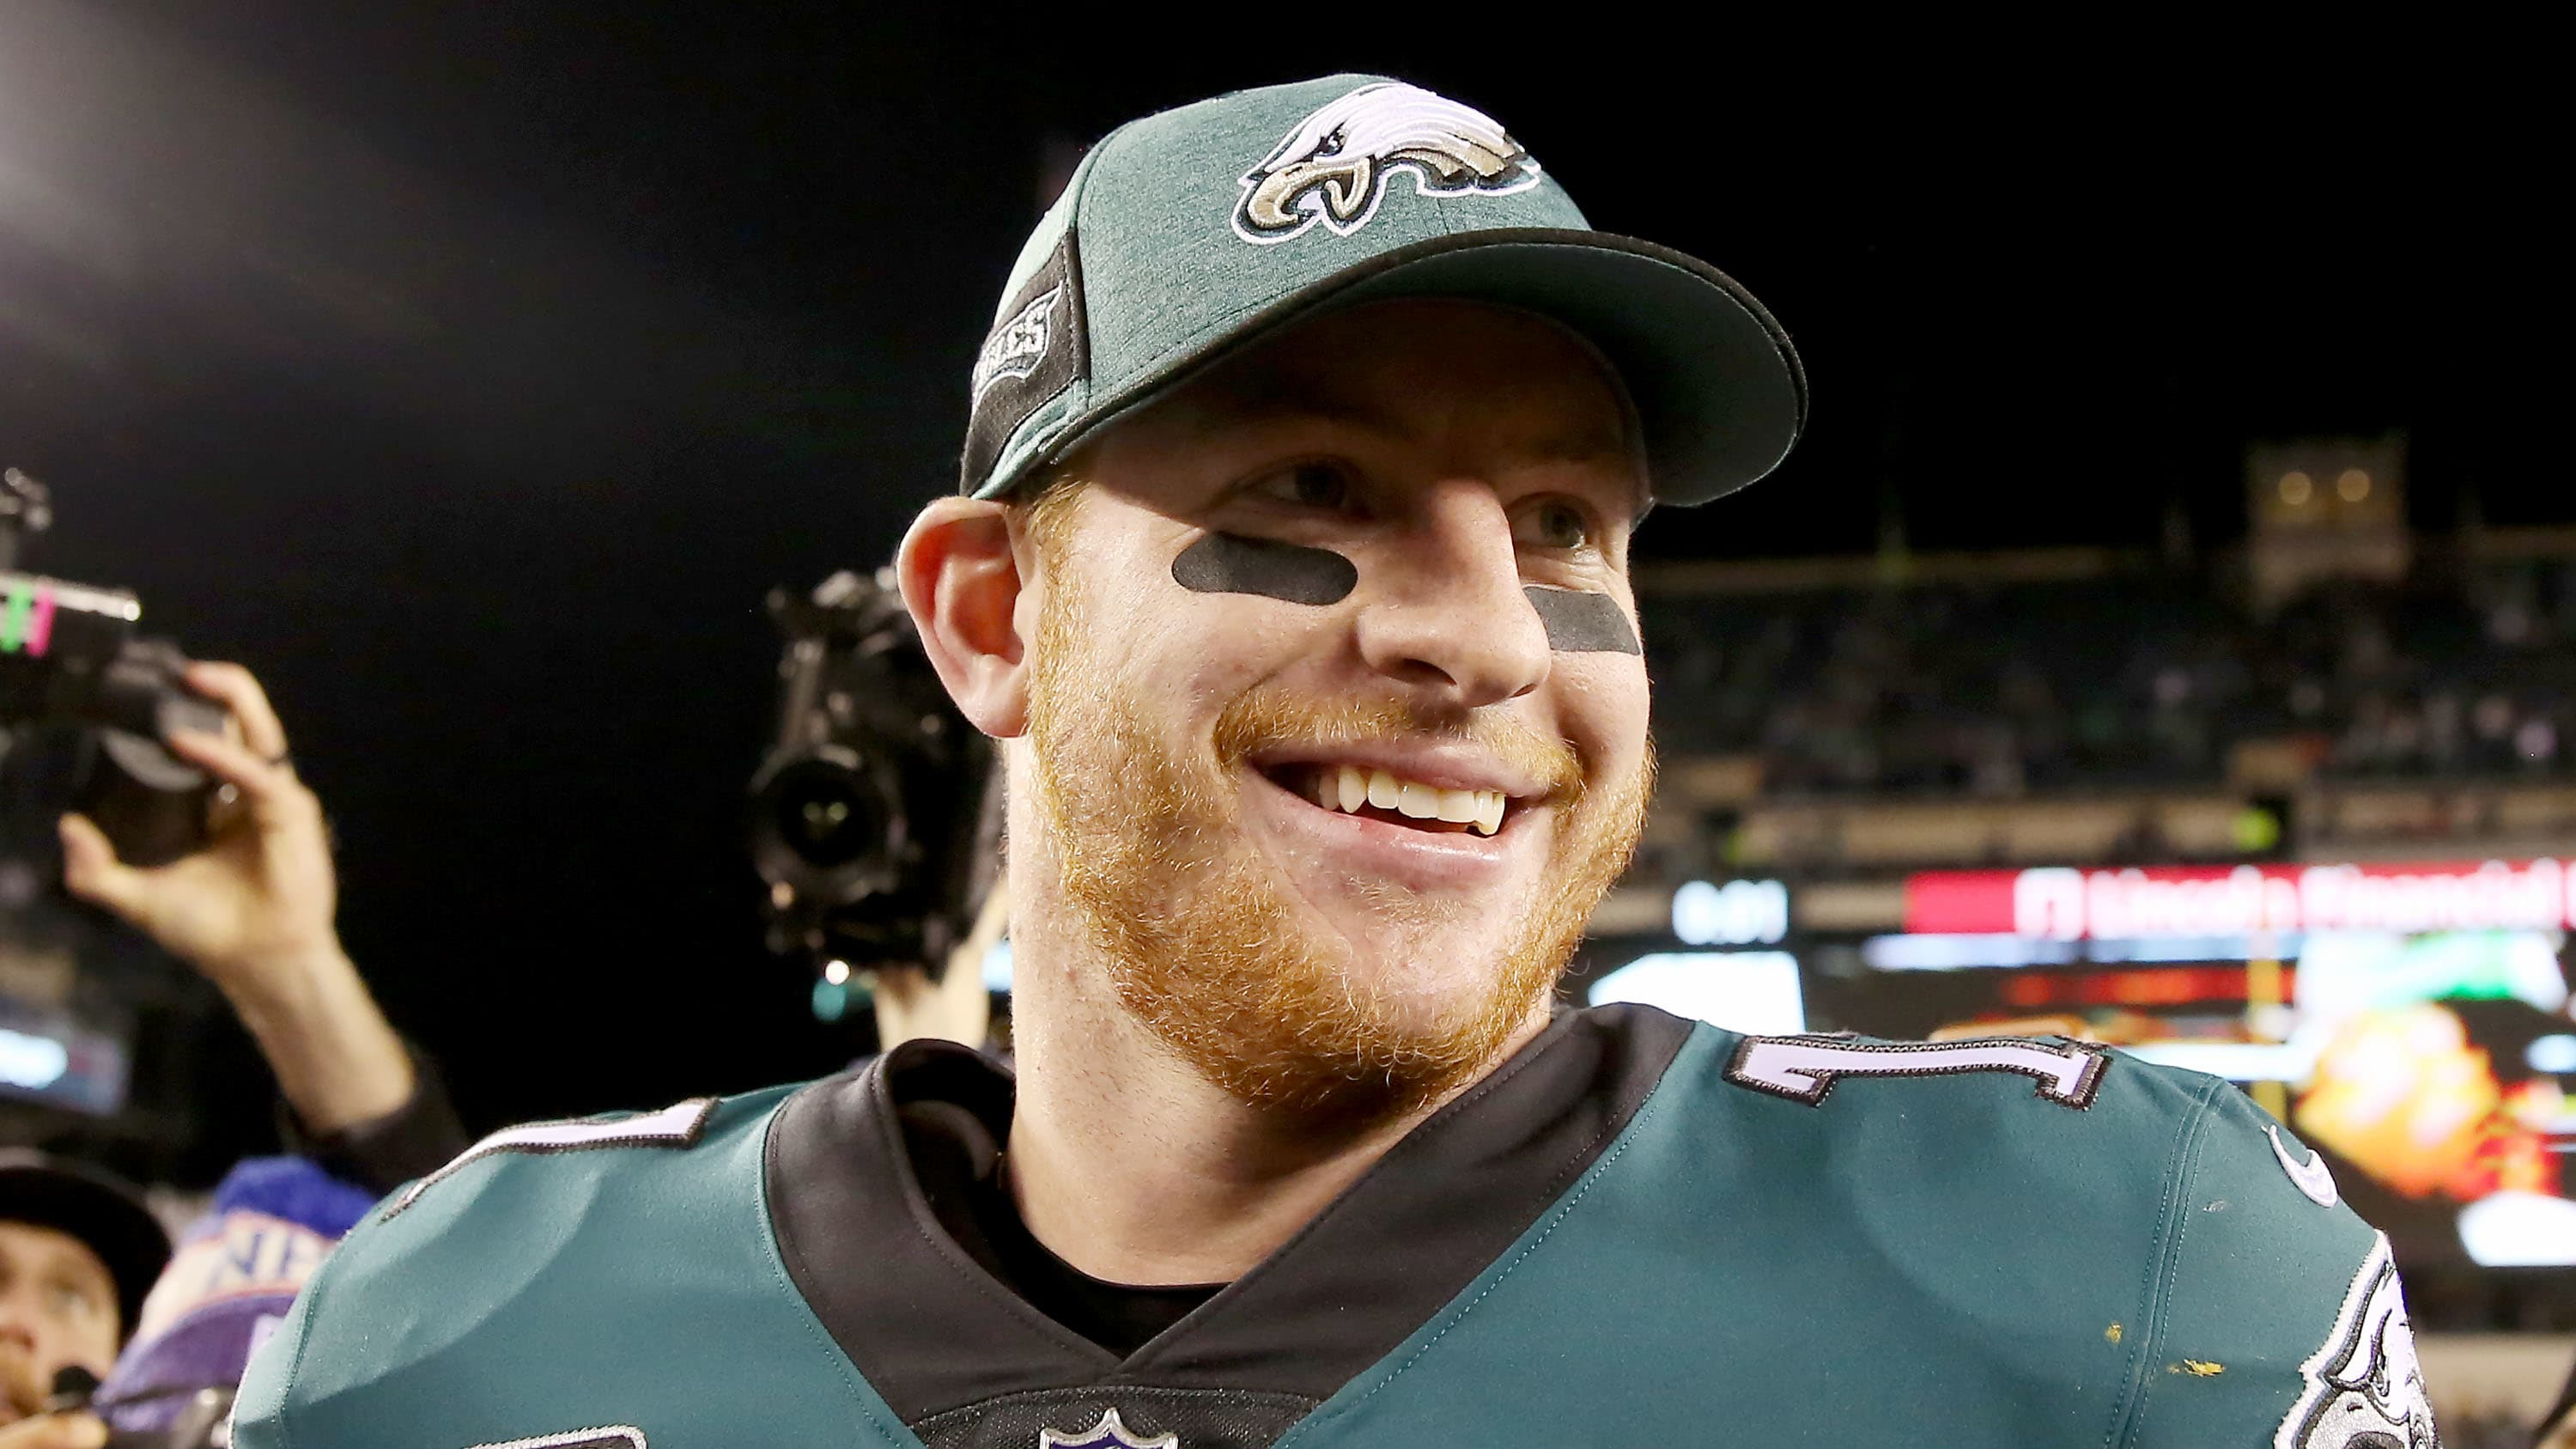 PHILADELPHIA, PENNSYLVANIA - DECEMBER 03:  Carson Wentz #11 of the Philadelphia Eagles smiles as he walks off the field after the game at Lincoln Financial Field on December 03, 2018 in Philadelphia, Pennsylvania. The Philadelphia Eagles defeated the Washington Redskins 28-13.(Photo by Elsa/Getty Images)